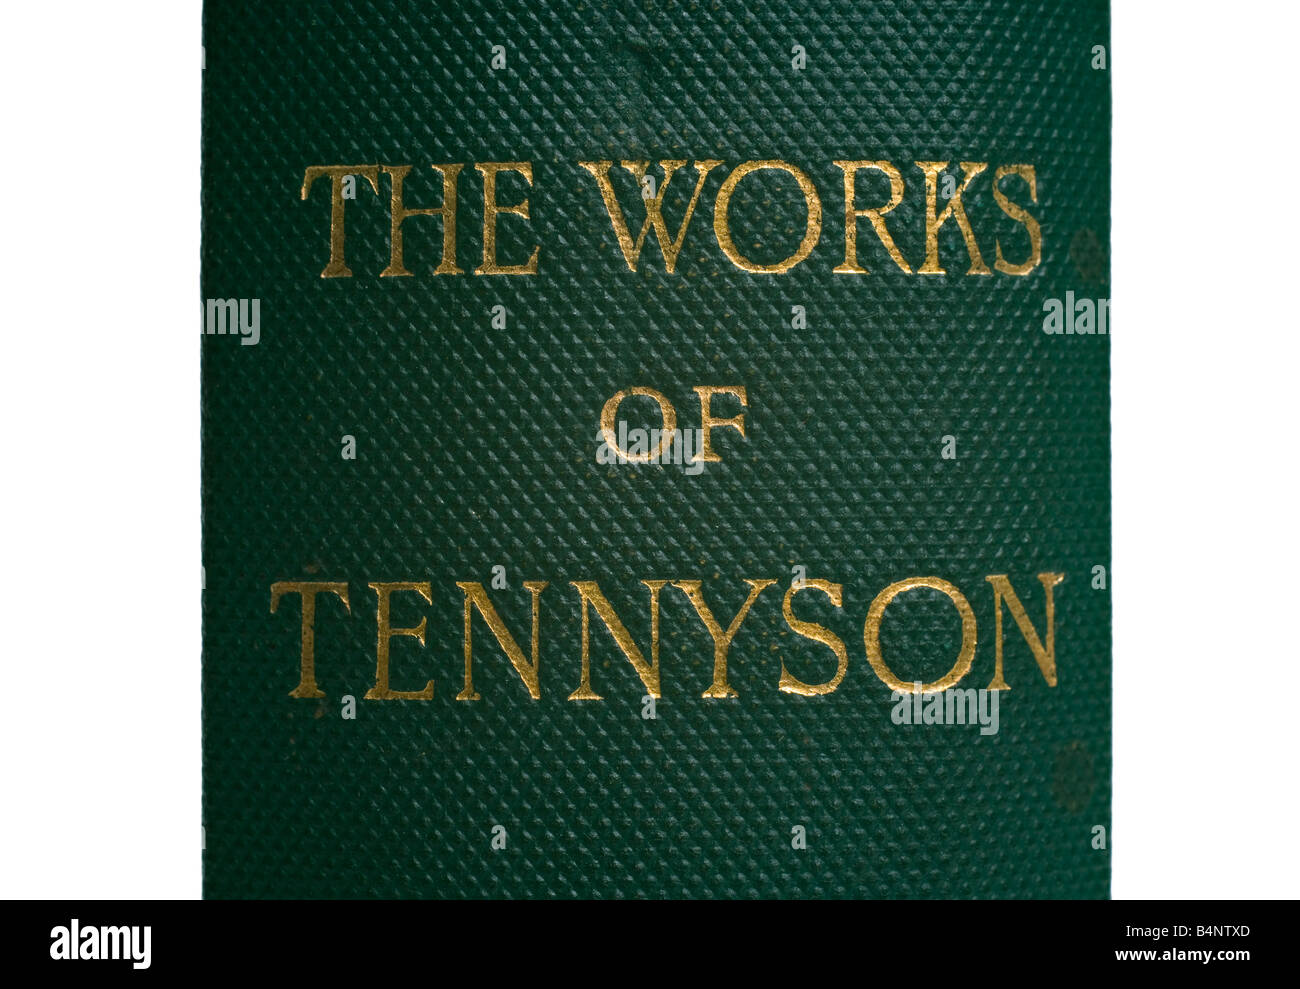 The name of the author Tennyson engraved in gold on the binding of an old book of his works - Stock Image